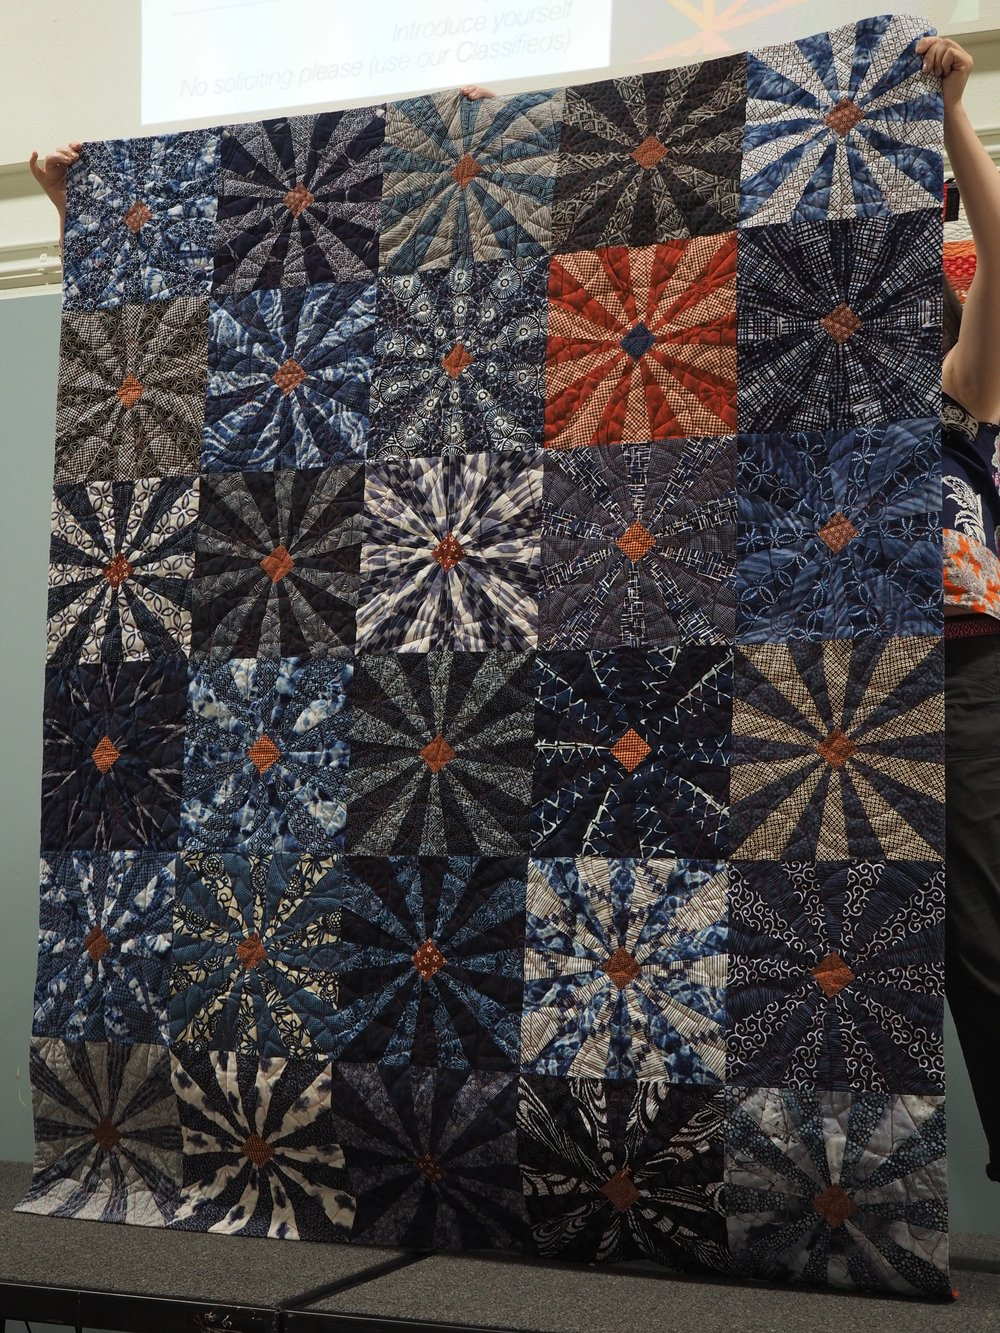 Another Indigo Quilt by Cris Pera